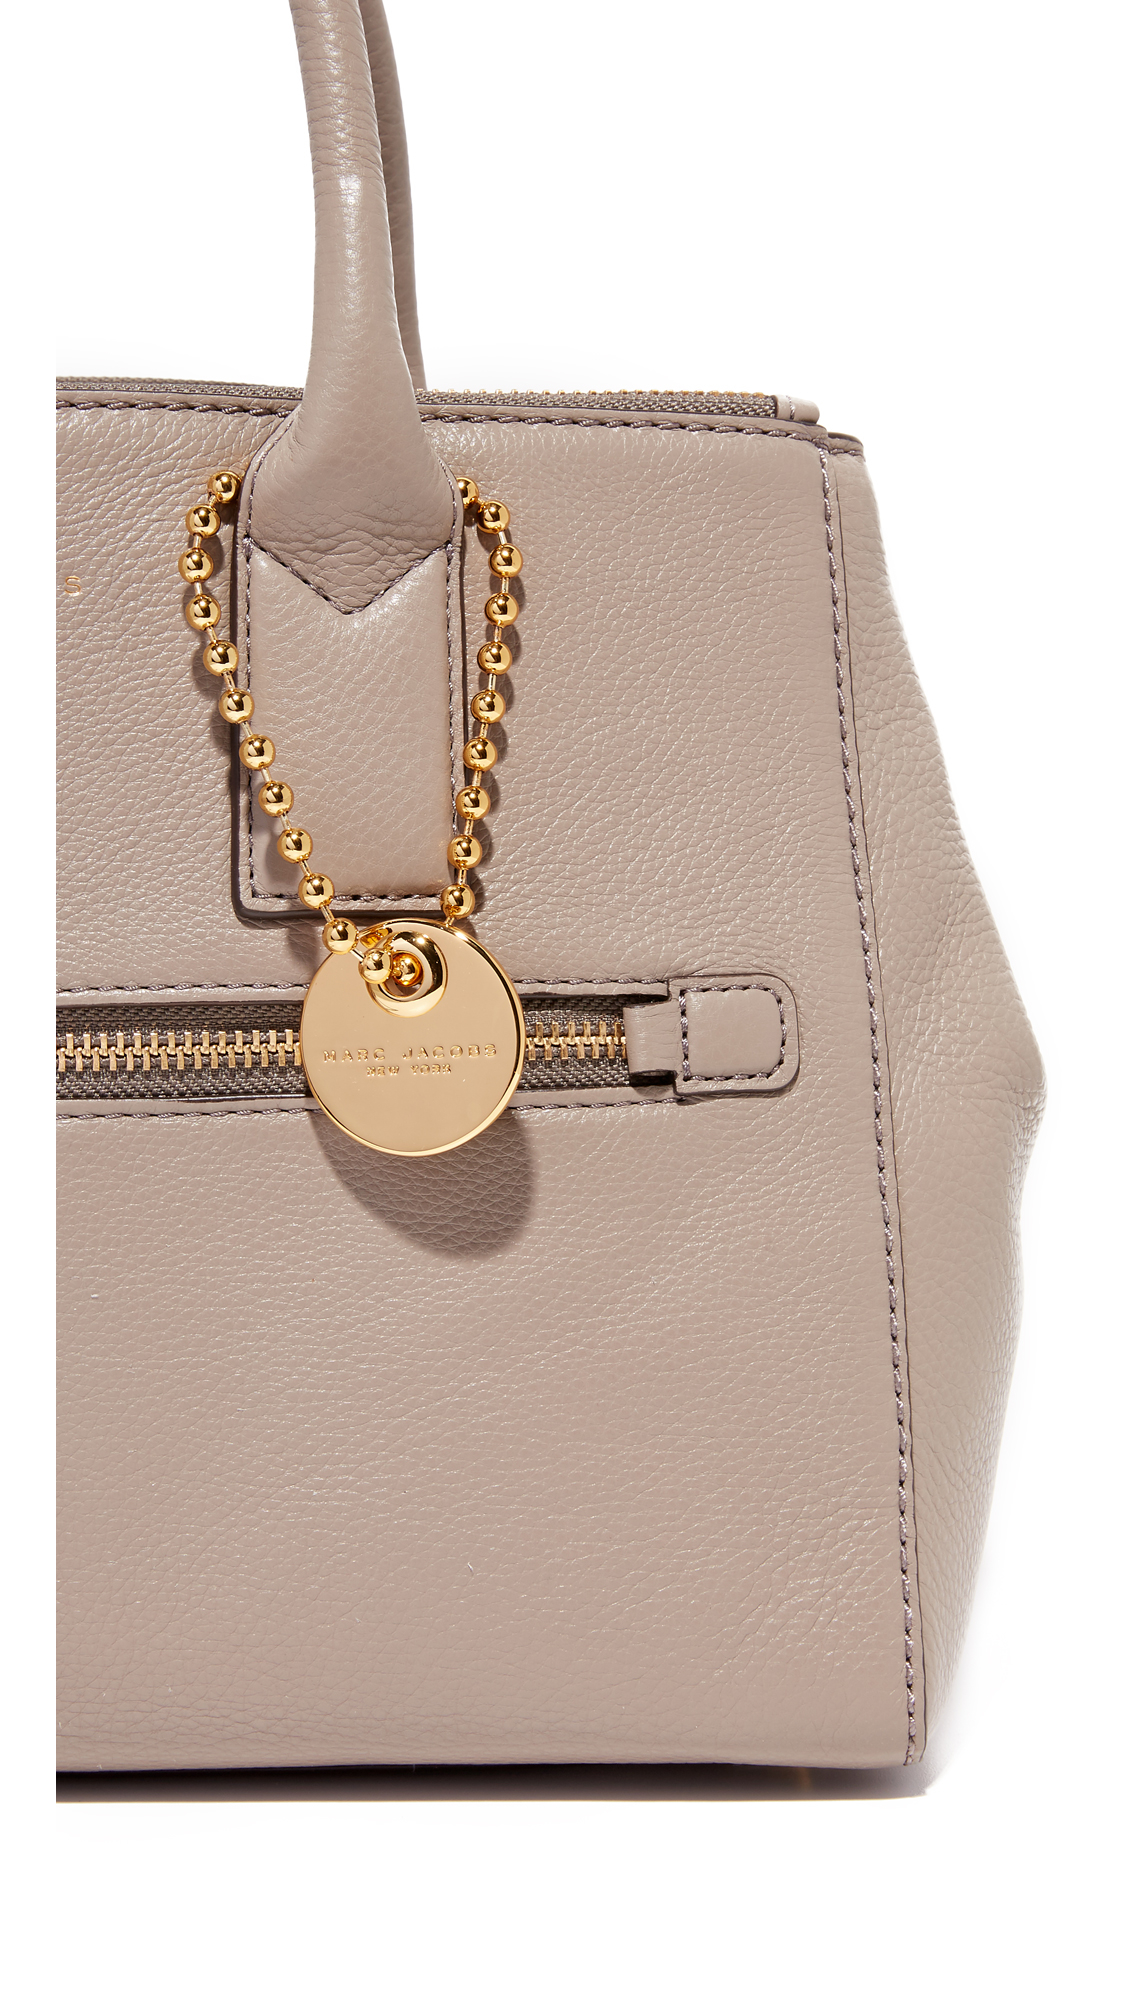 Marc Jacobs Leather Recruit East / West Tote in Mink (Natural)